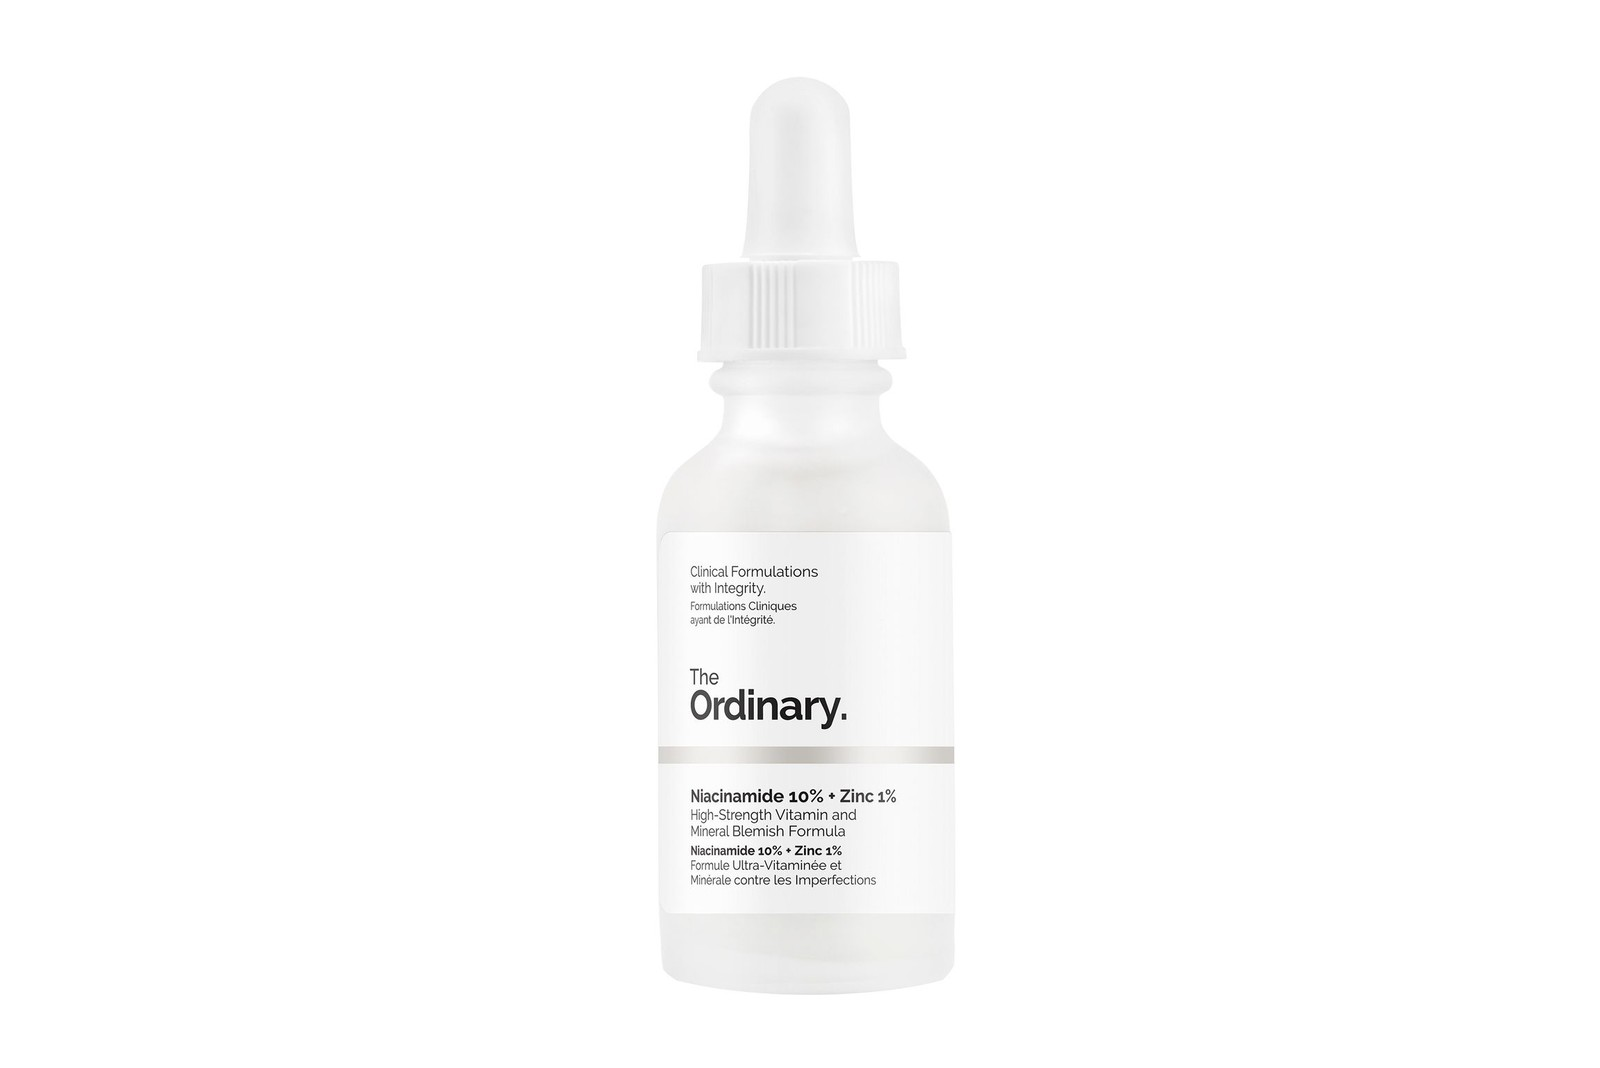 Best Products From The Ordinary Skincare Serum Caffeine Drops Solution Makeup Remover Beauty Oily Skin Formula Blemish Remover